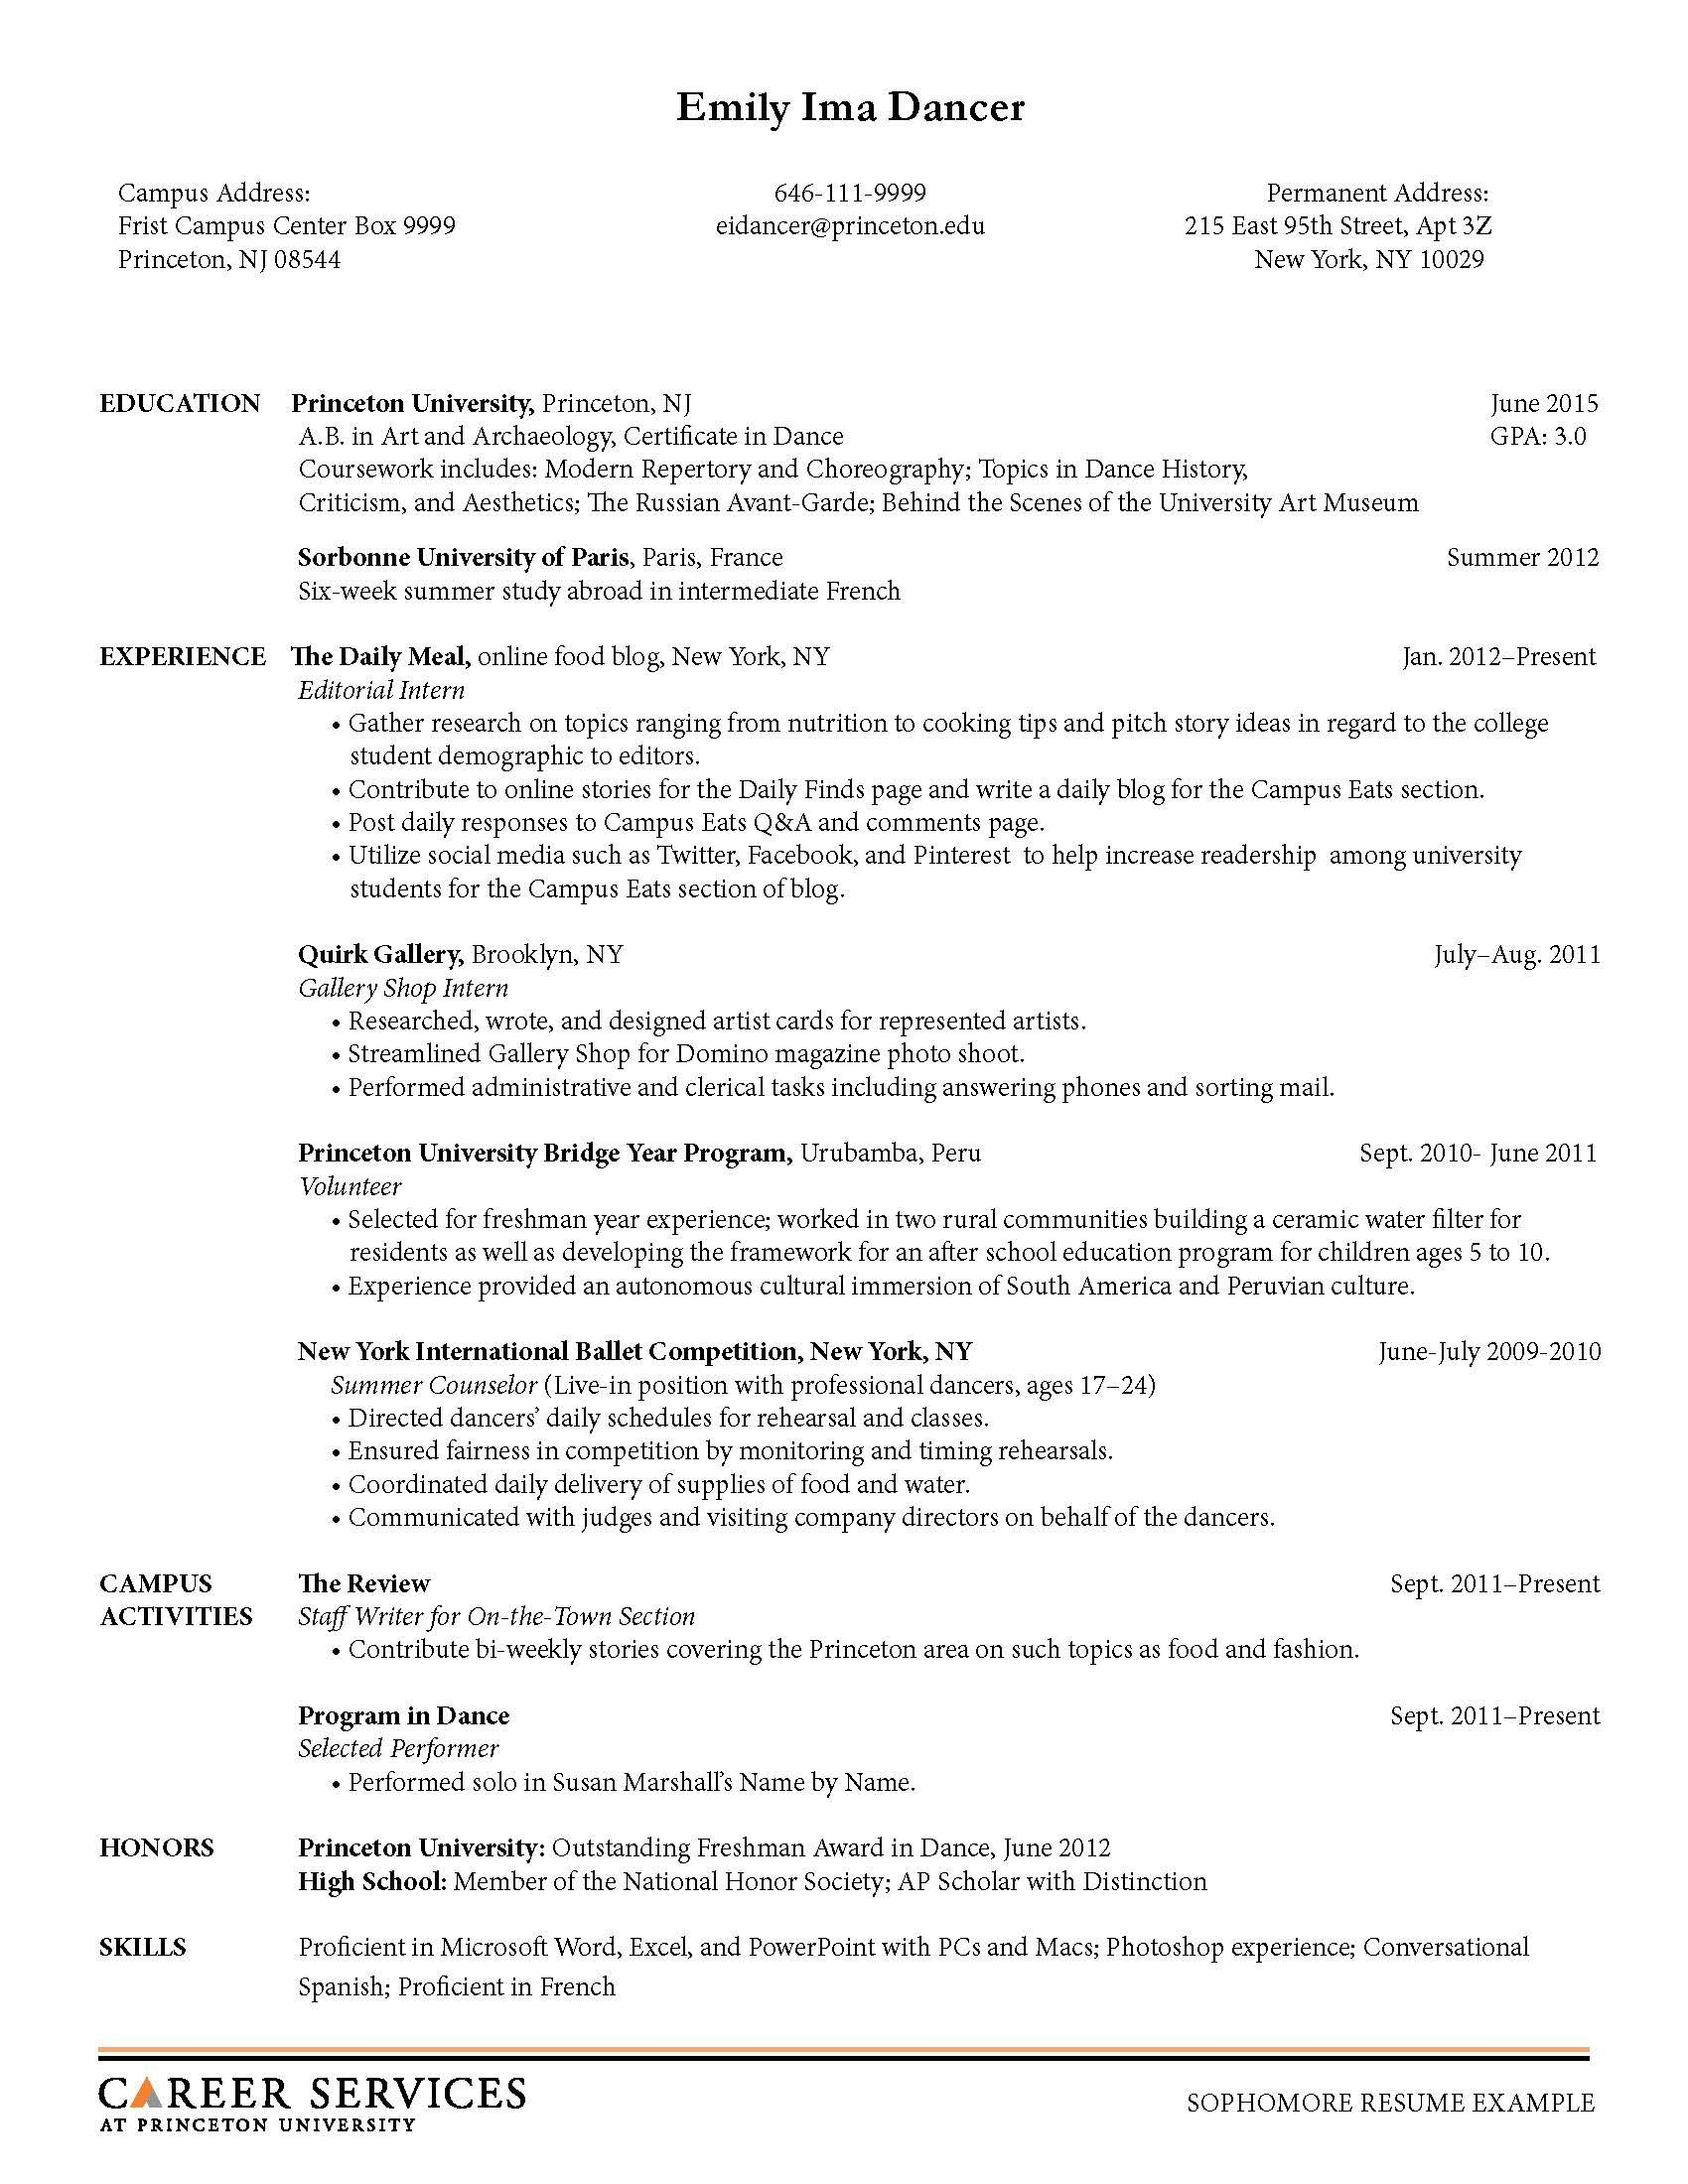 Opposenewapstandardsus  Splendid Sample Resume Resume And Career On Pinterest With Luxury Skills In Resume Besides Teacher Assistant Resume Furthermore What Should Be On A Resume With Comely Resume Headings Also Create A Free Resume In Addition College Graduate Resume And Customer Service Skills For Resume As Well As Quick Resume Additionally How To Start A Resume From Pinterestcom With Opposenewapstandardsus  Luxury Sample Resume Resume And Career On Pinterest With Comely Skills In Resume Besides Teacher Assistant Resume Furthermore What Should Be On A Resume And Splendid Resume Headings Also Create A Free Resume In Addition College Graduate Resume From Pinterestcom